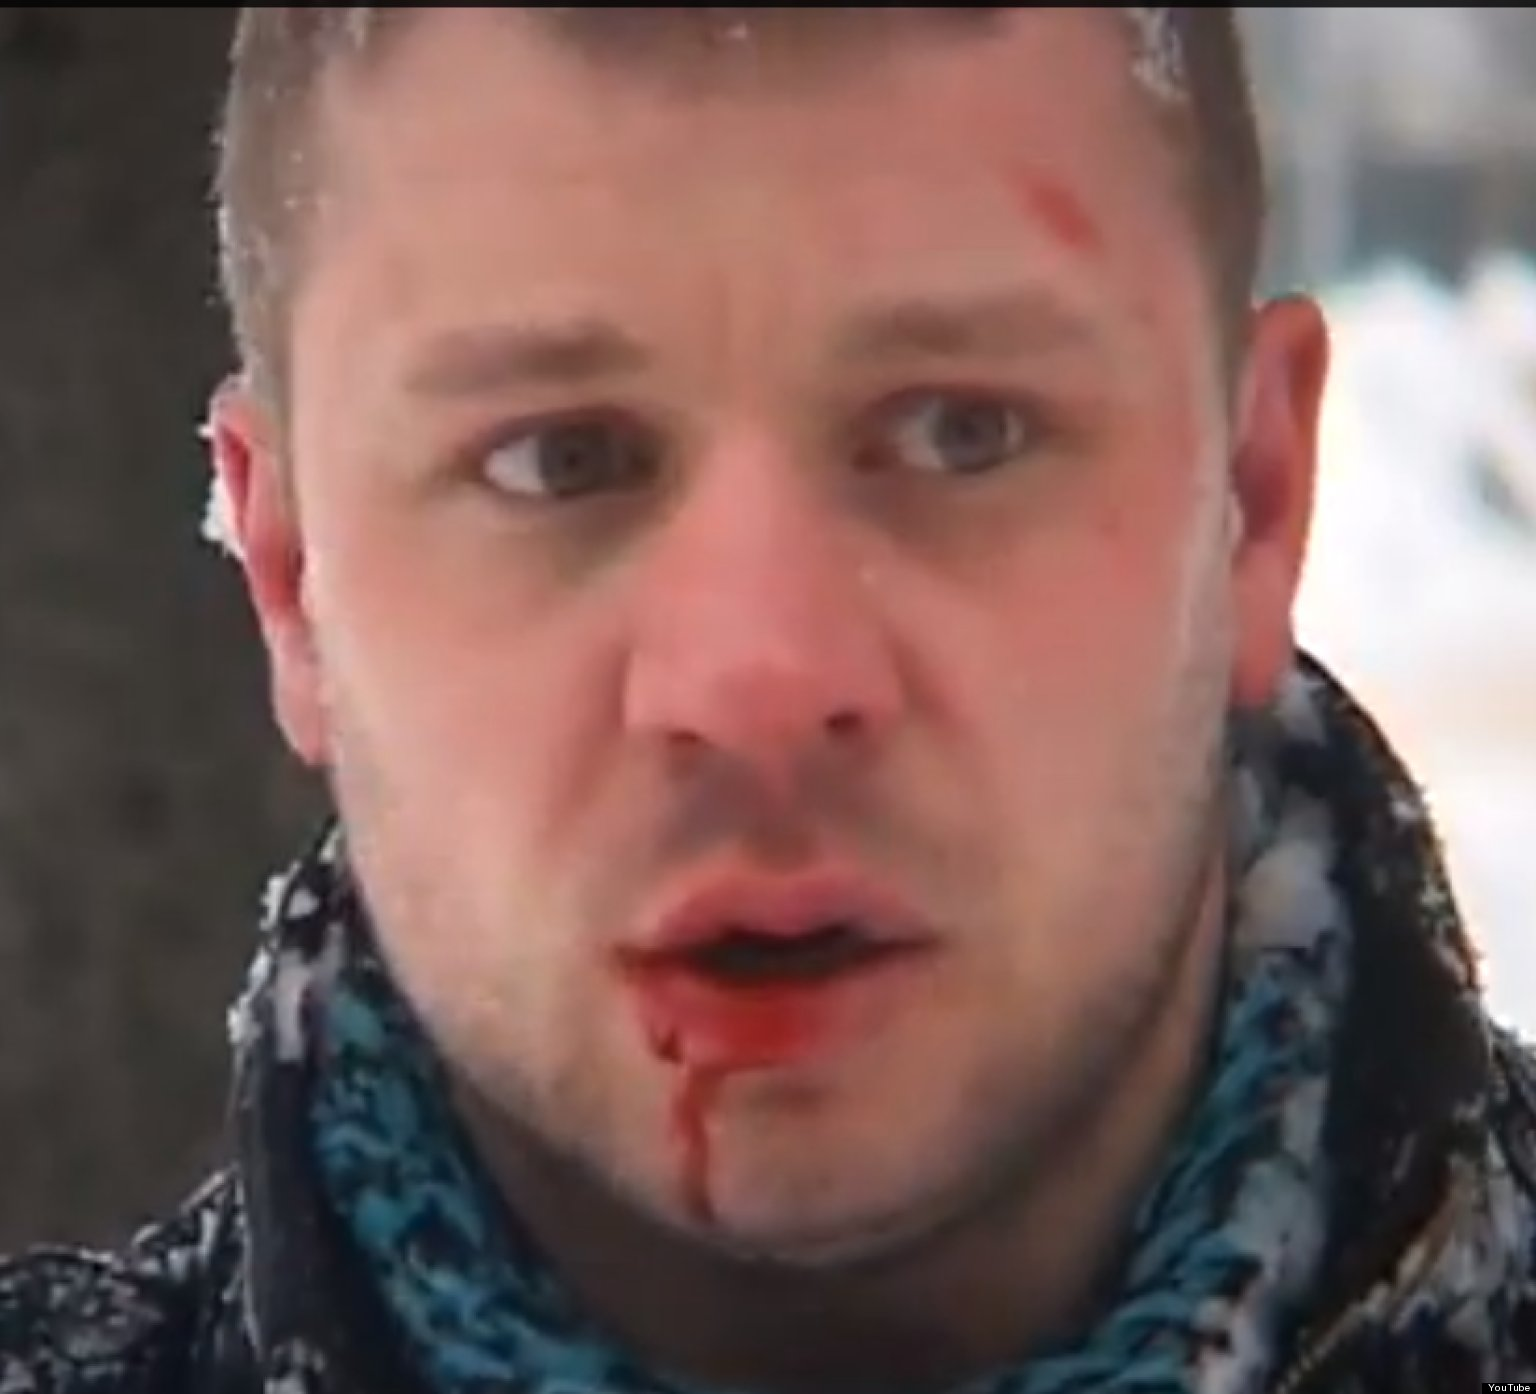 Artem Russia  city pictures gallery : Artem Kalinin, Russian Gay Activist, Beaten By Local Neo Nazi On ...